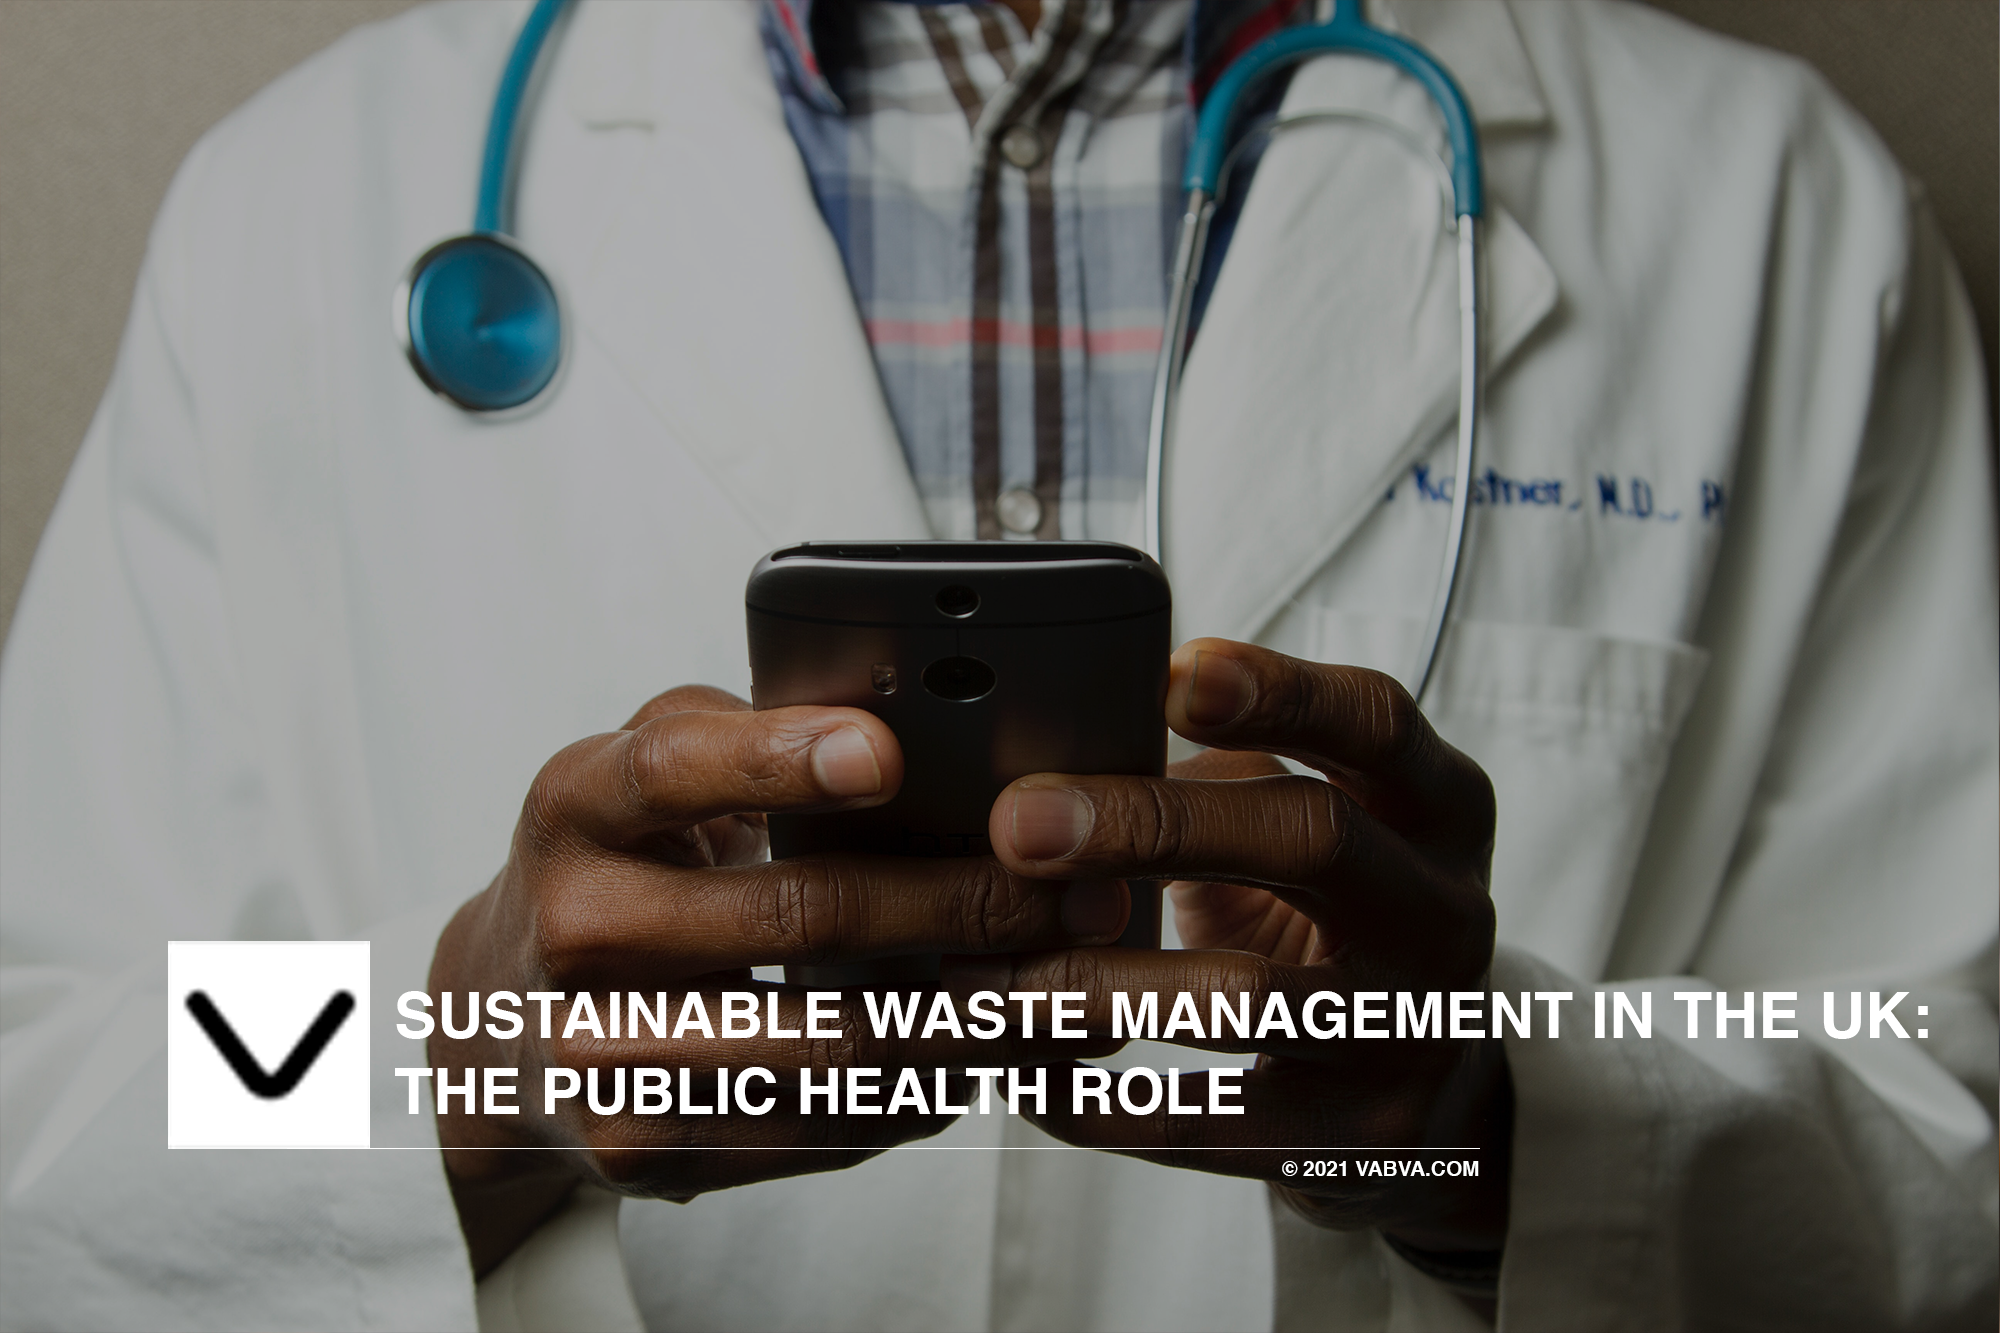 Sustainable waste management in the UK: The public health role